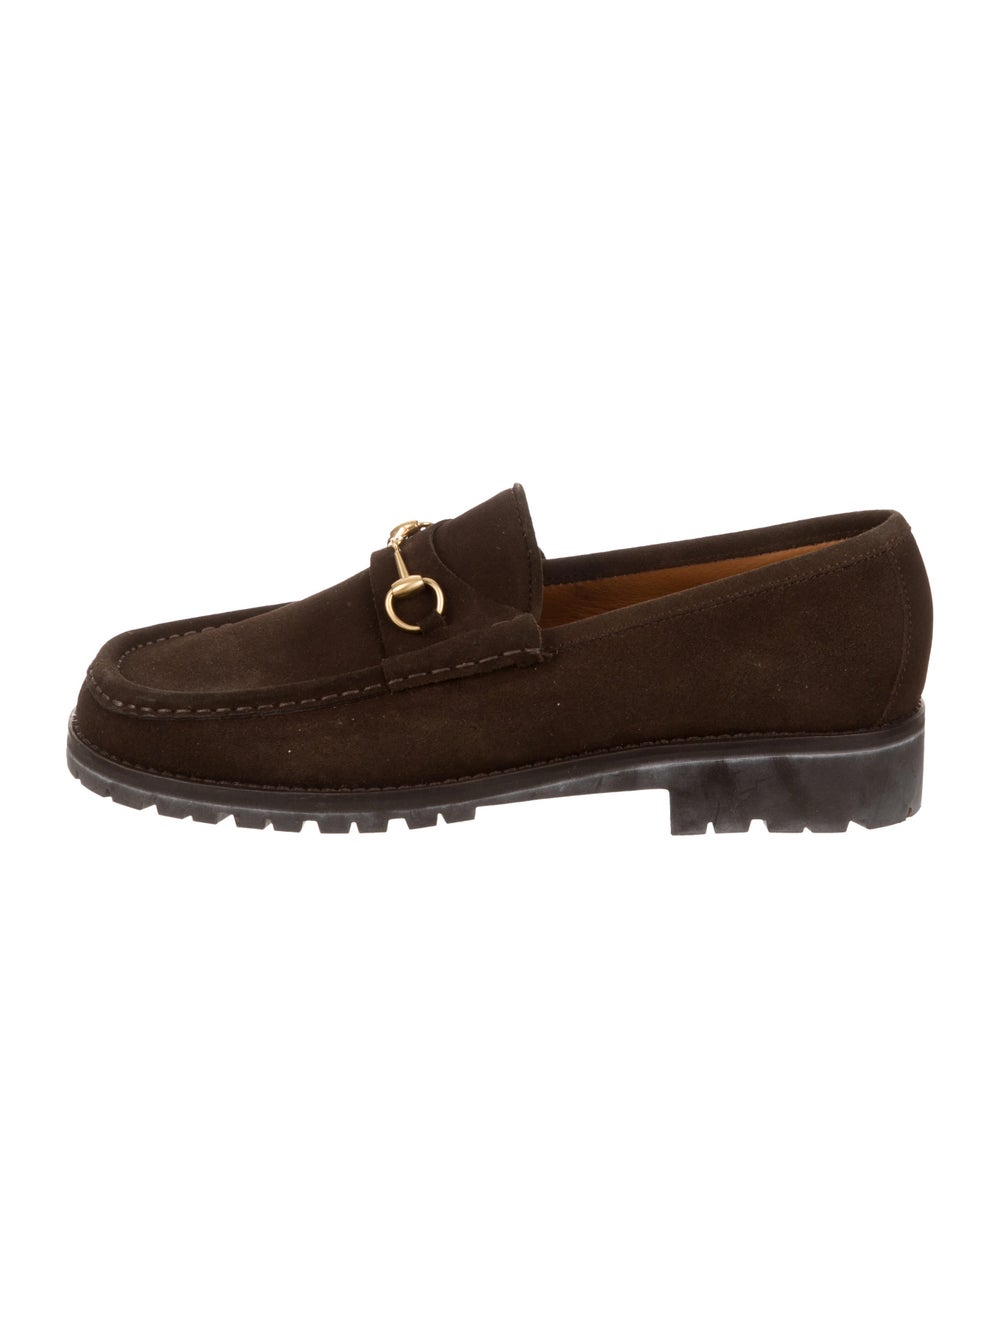 Gucci Suede Horsebit Loafers brass - image 1